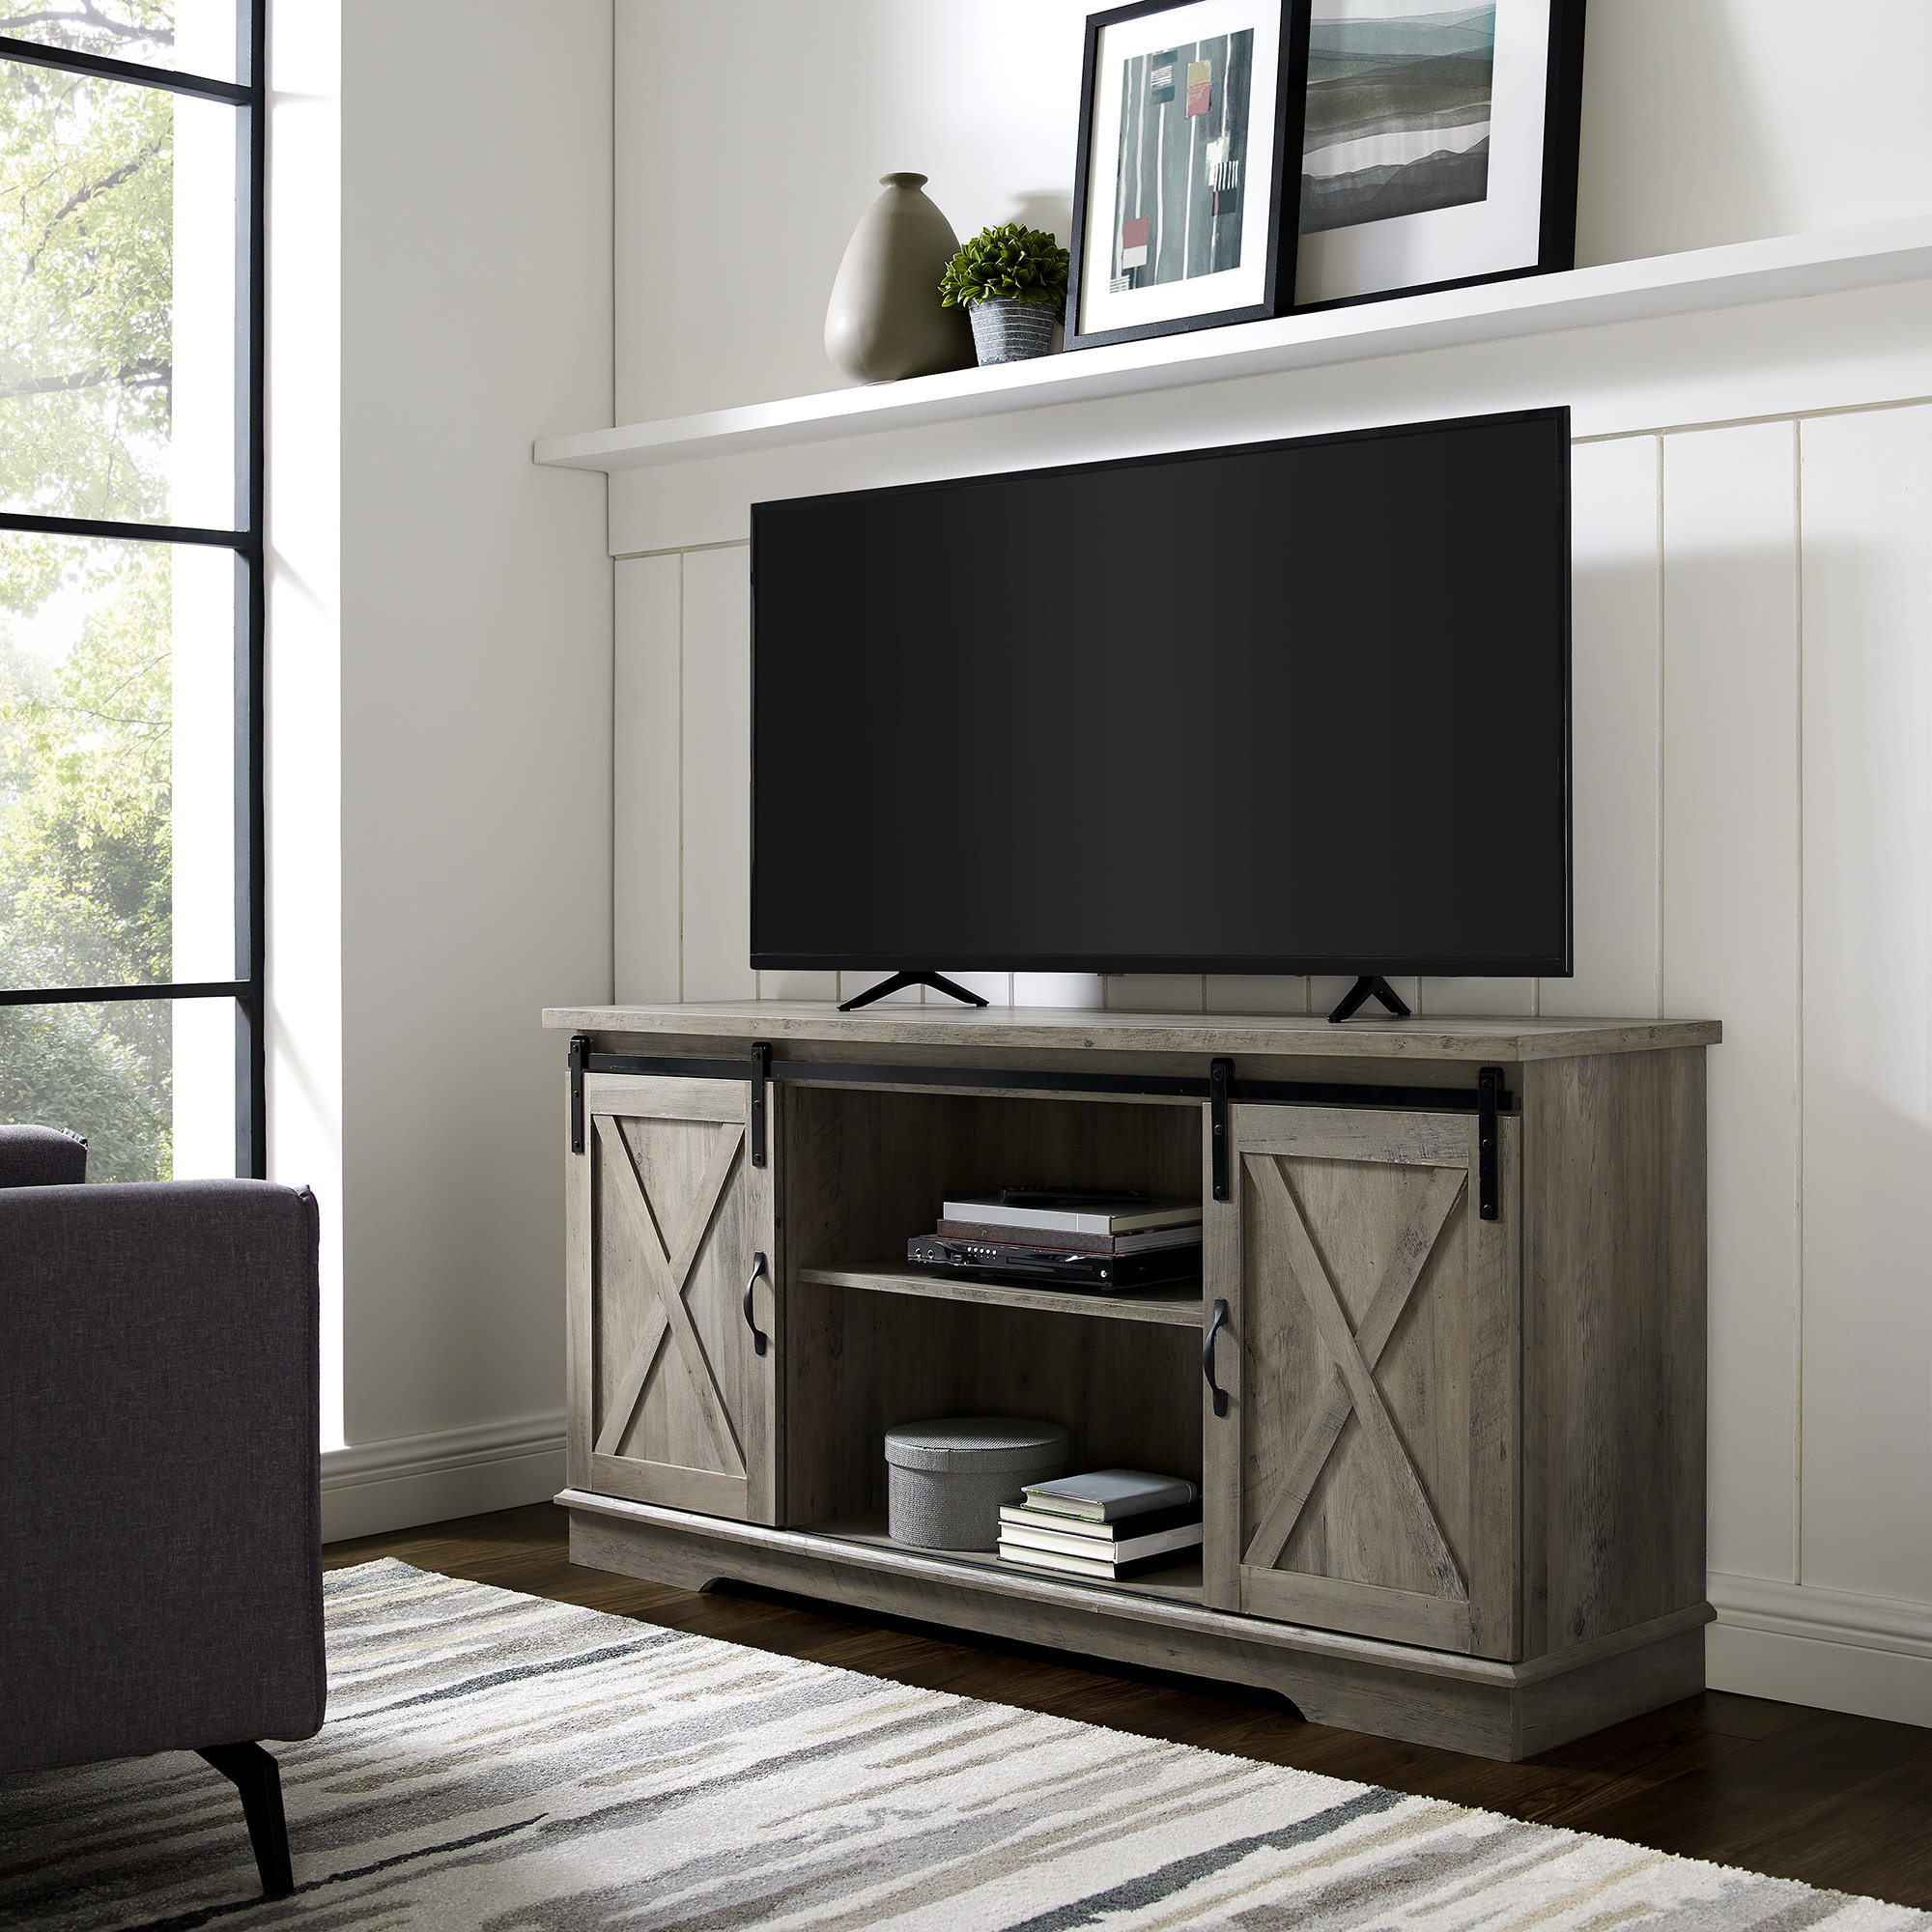 End Table And Tv Stand Set | Wayfair Inside Combs 63 Inch Tv Stands (View 5 of 20)